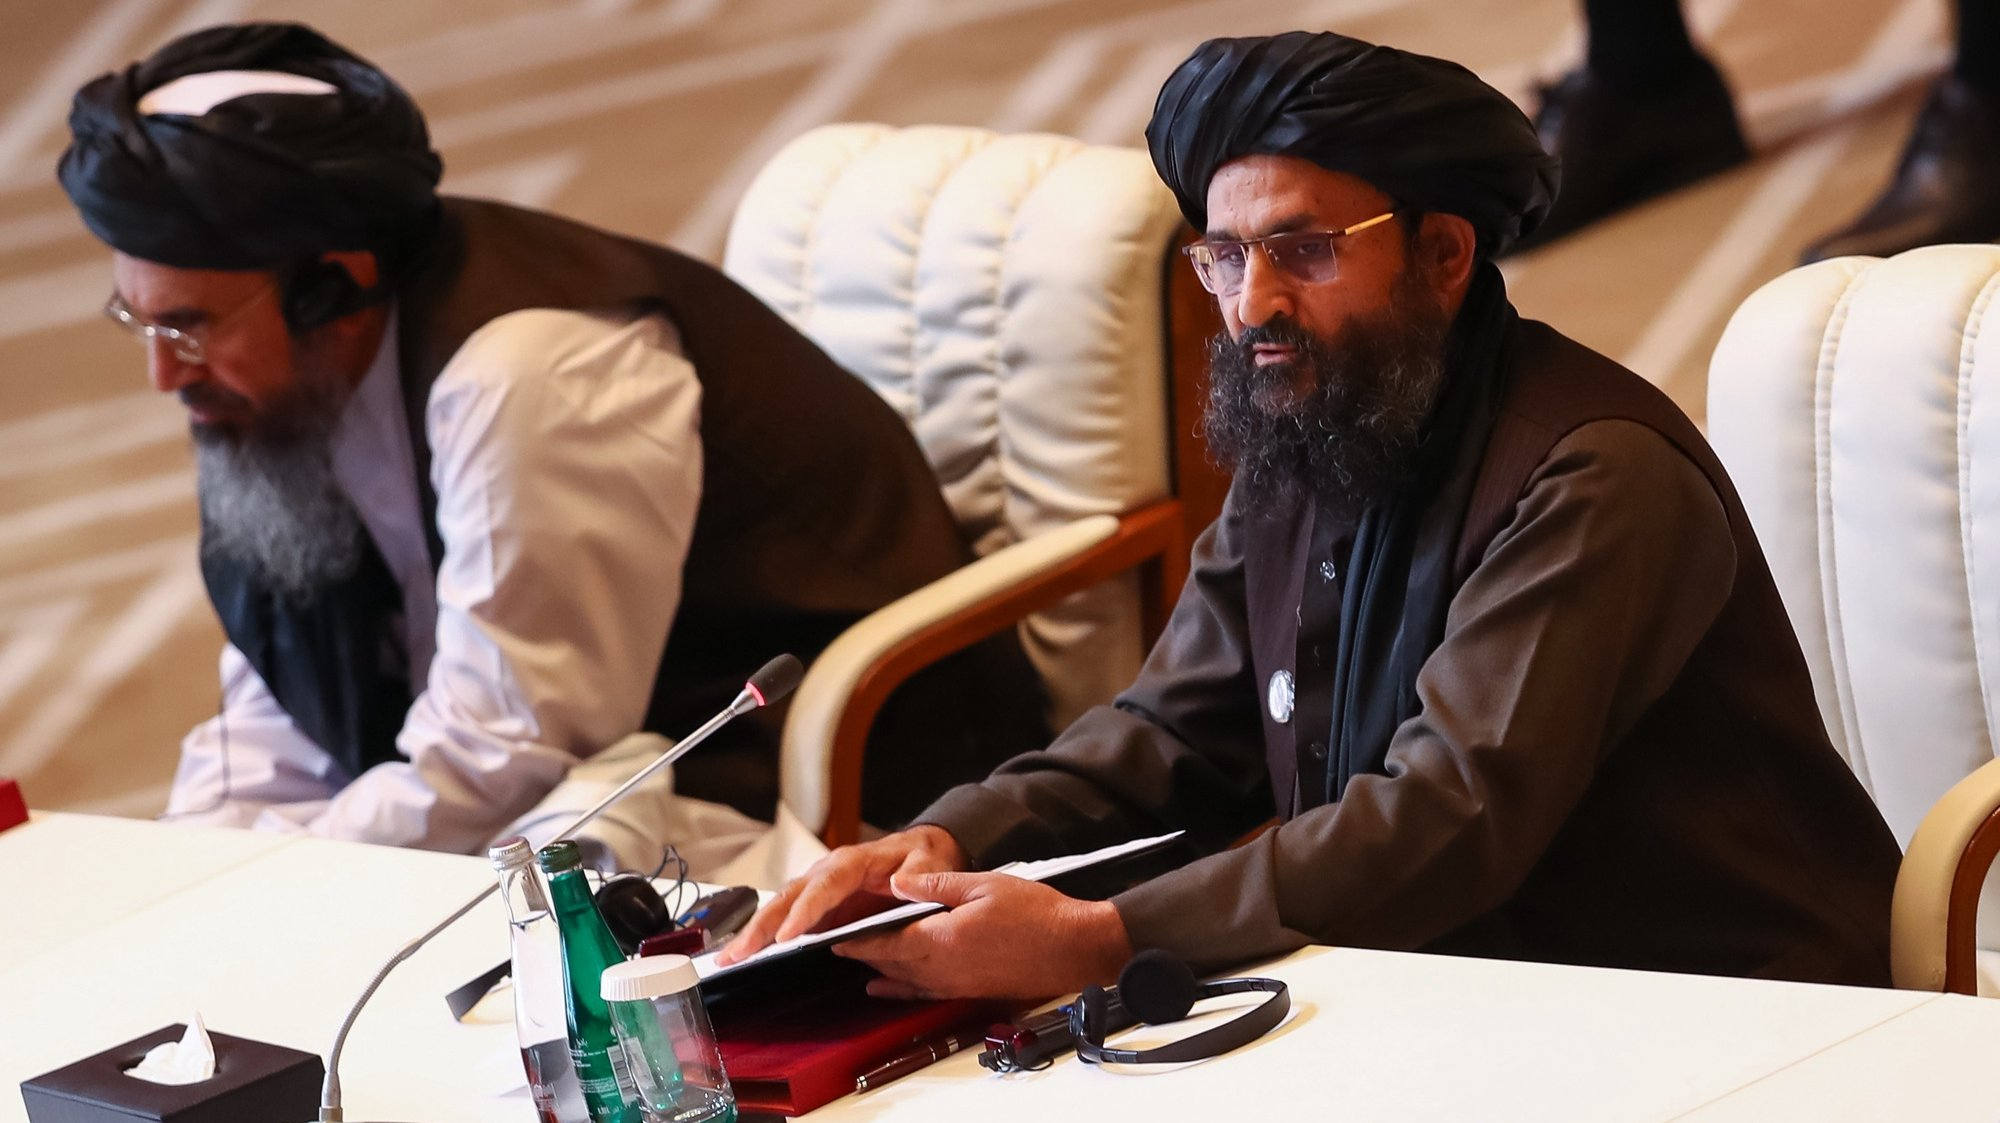 epa08663248 Taliban co-founder Mullah Abdul Ghani Baradar (R) speaks during the opening session of the peace talks between the Afghan government and the Taliban  in Doha, Qatar, 12 September 2020. The United States, Taliban and Afghanistan government delegations officially began the intra-Afghan negotiations on 12 September 2020.  EPA/STRINGER